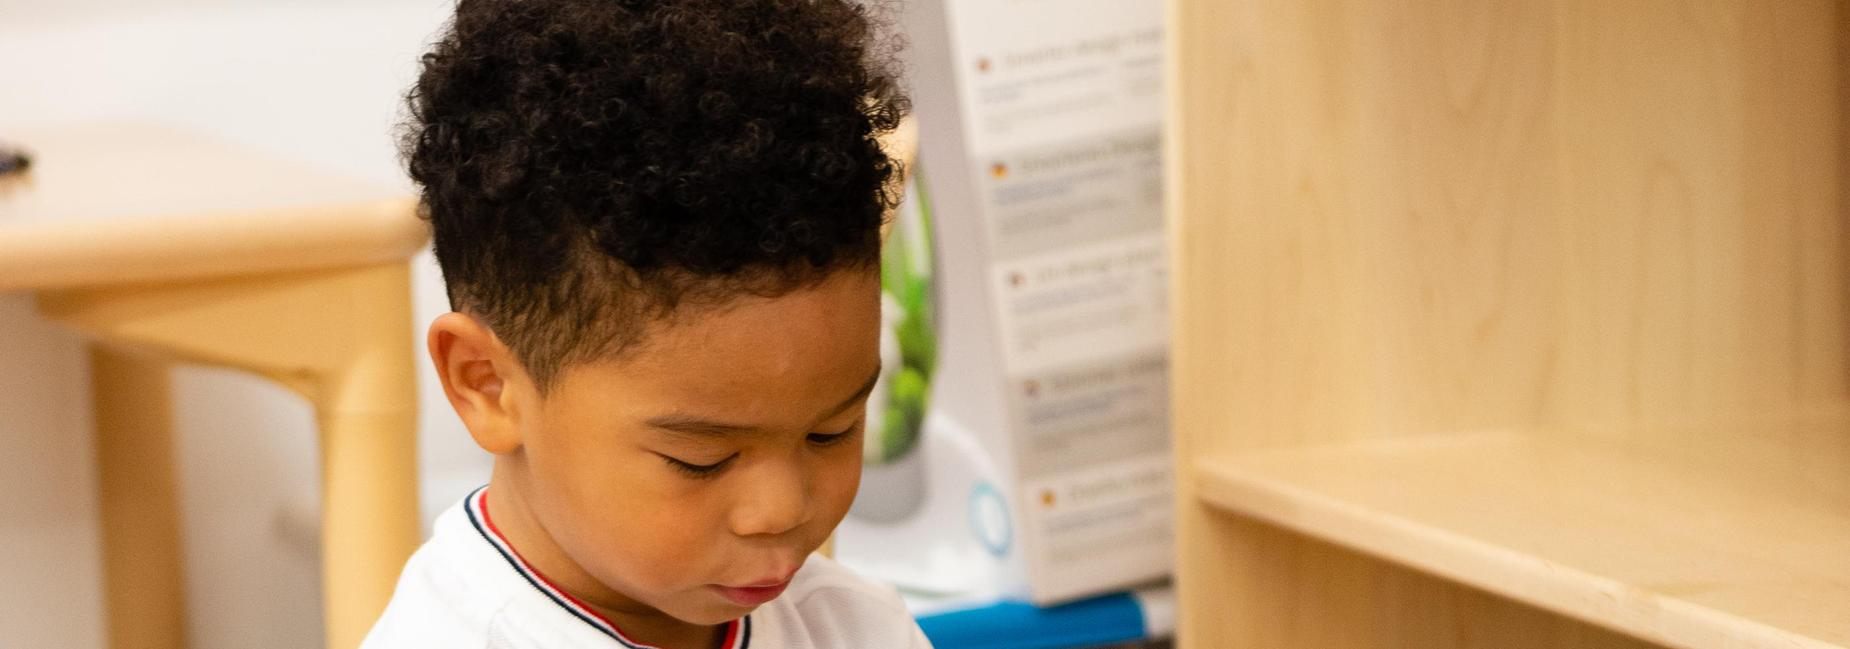 A pre-k student seated in front of a bookshelf.